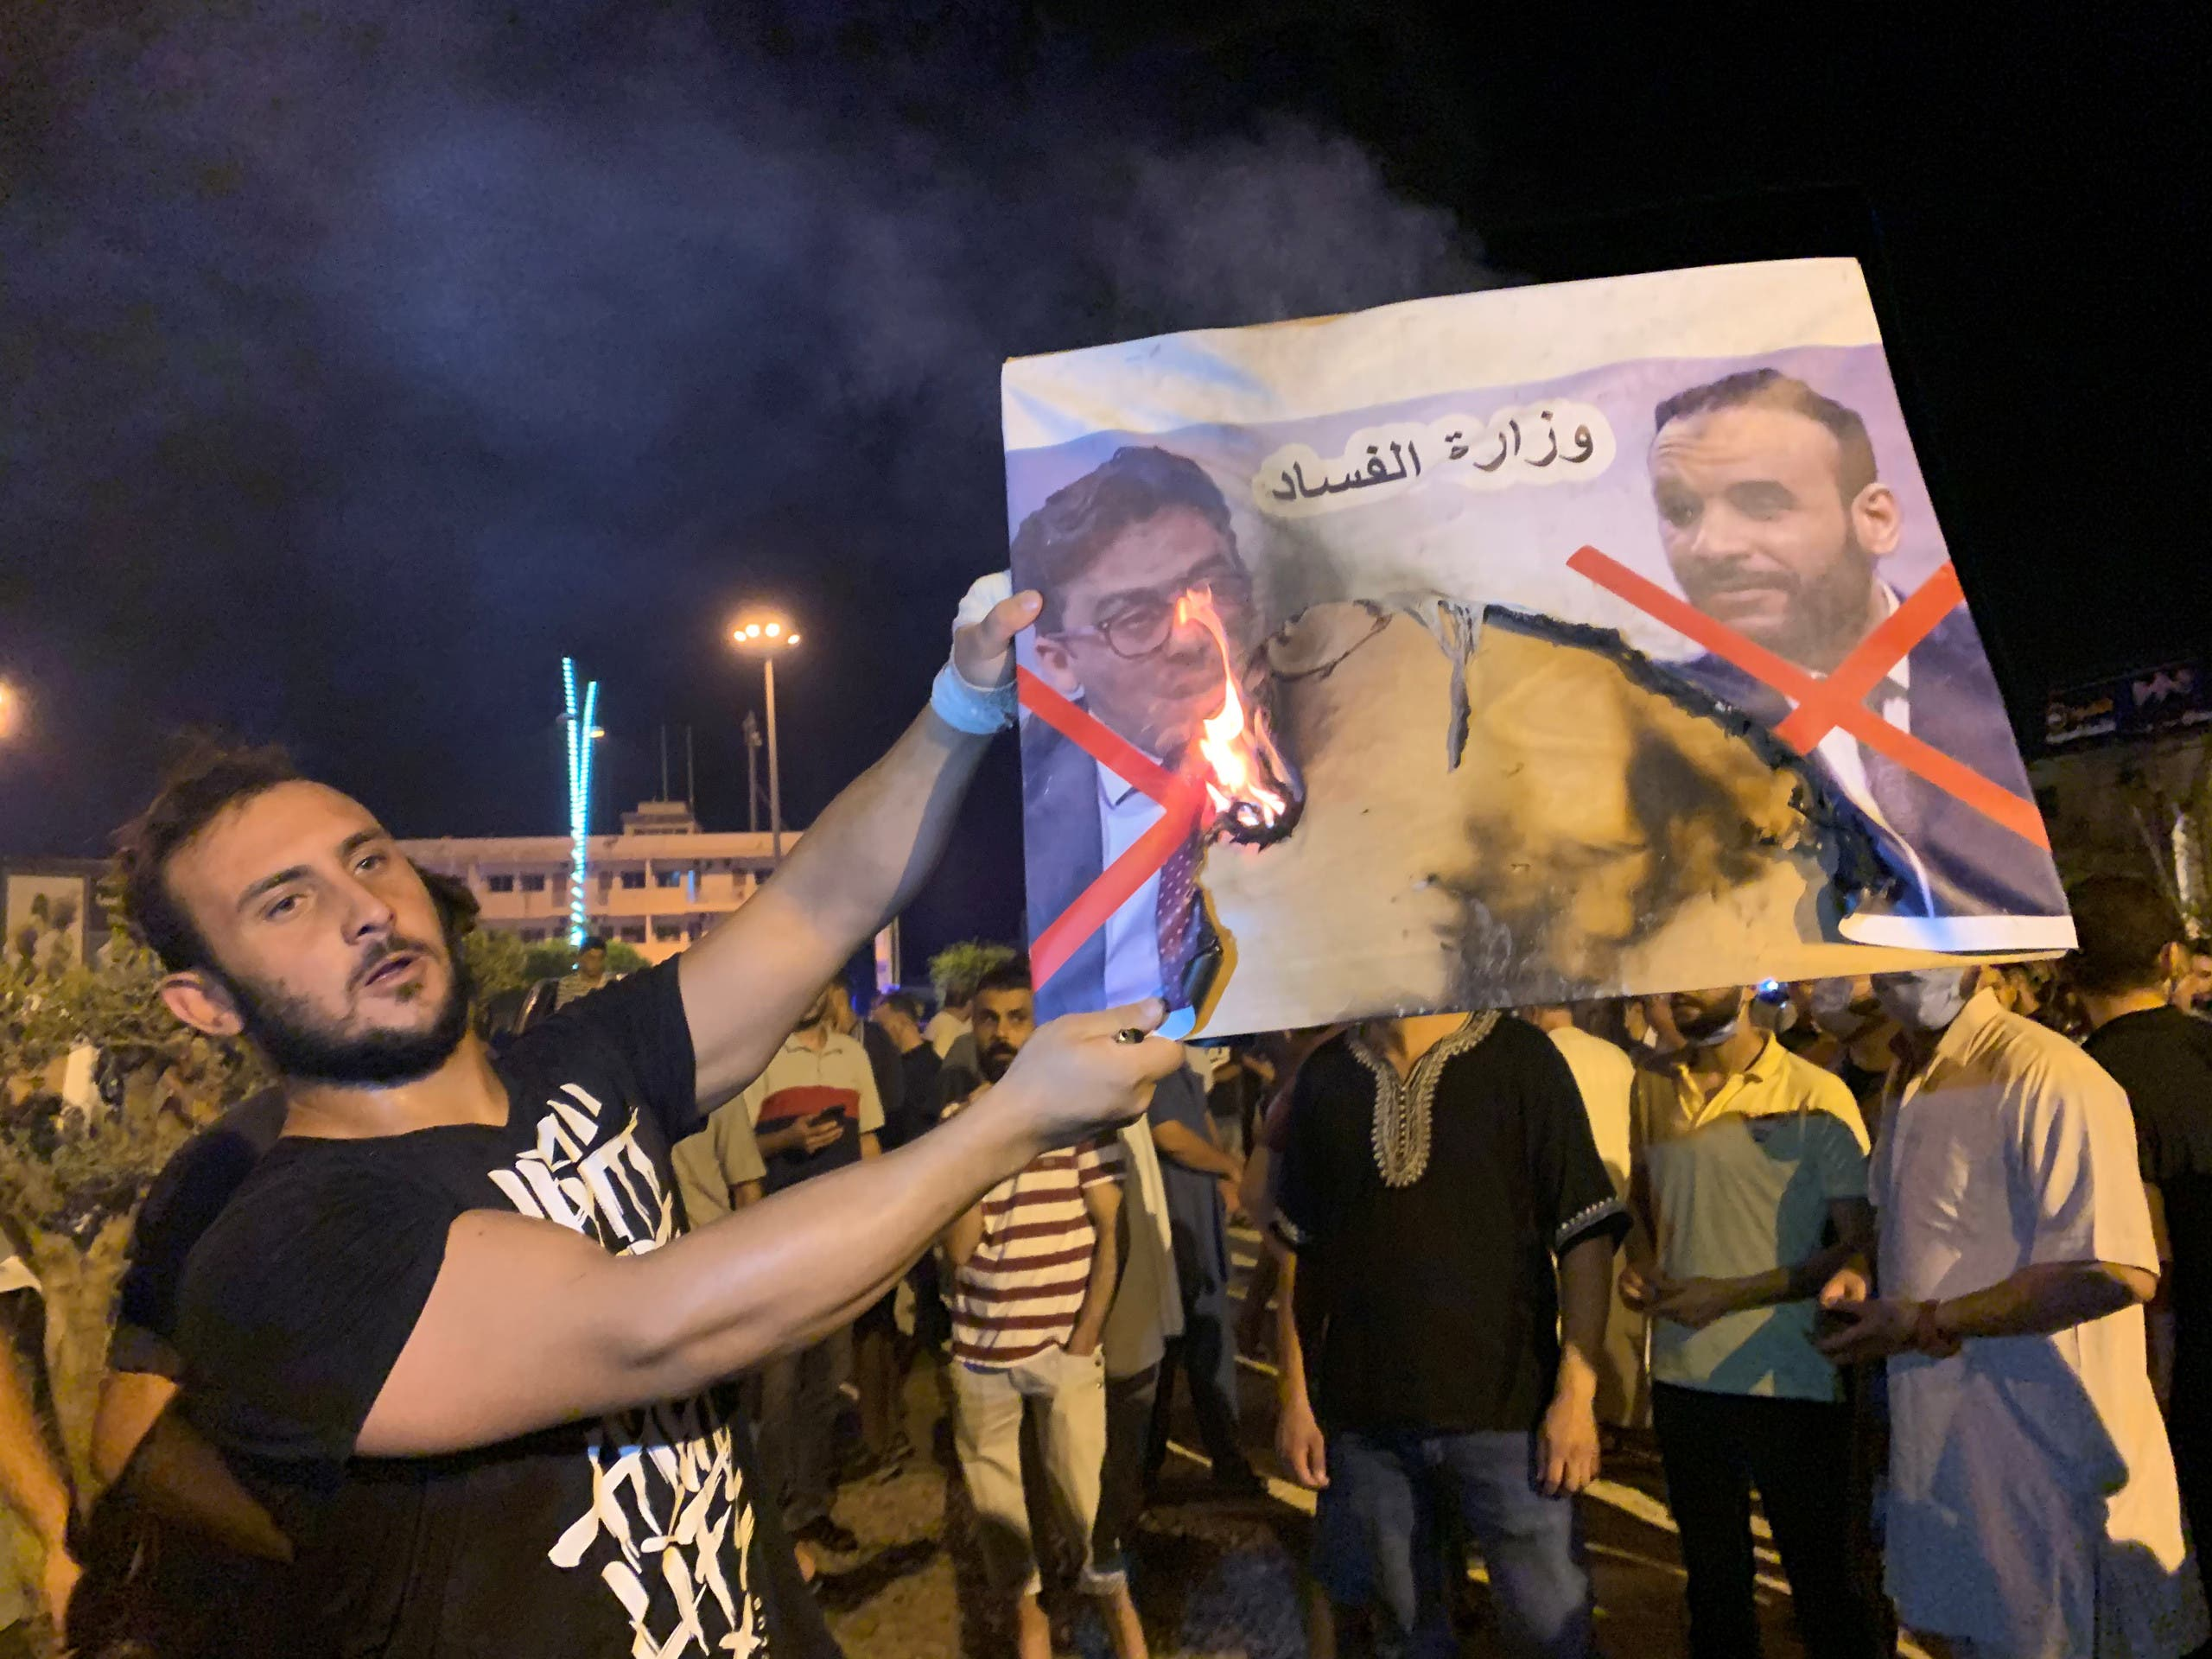 A Libyan protester burns an image of Libyan officials as he protests over announcement of suspension of the Interior Minister Fathi Bashagha during an anti-government protest in Misrata, Libya August 29, 2020. (Reuters)